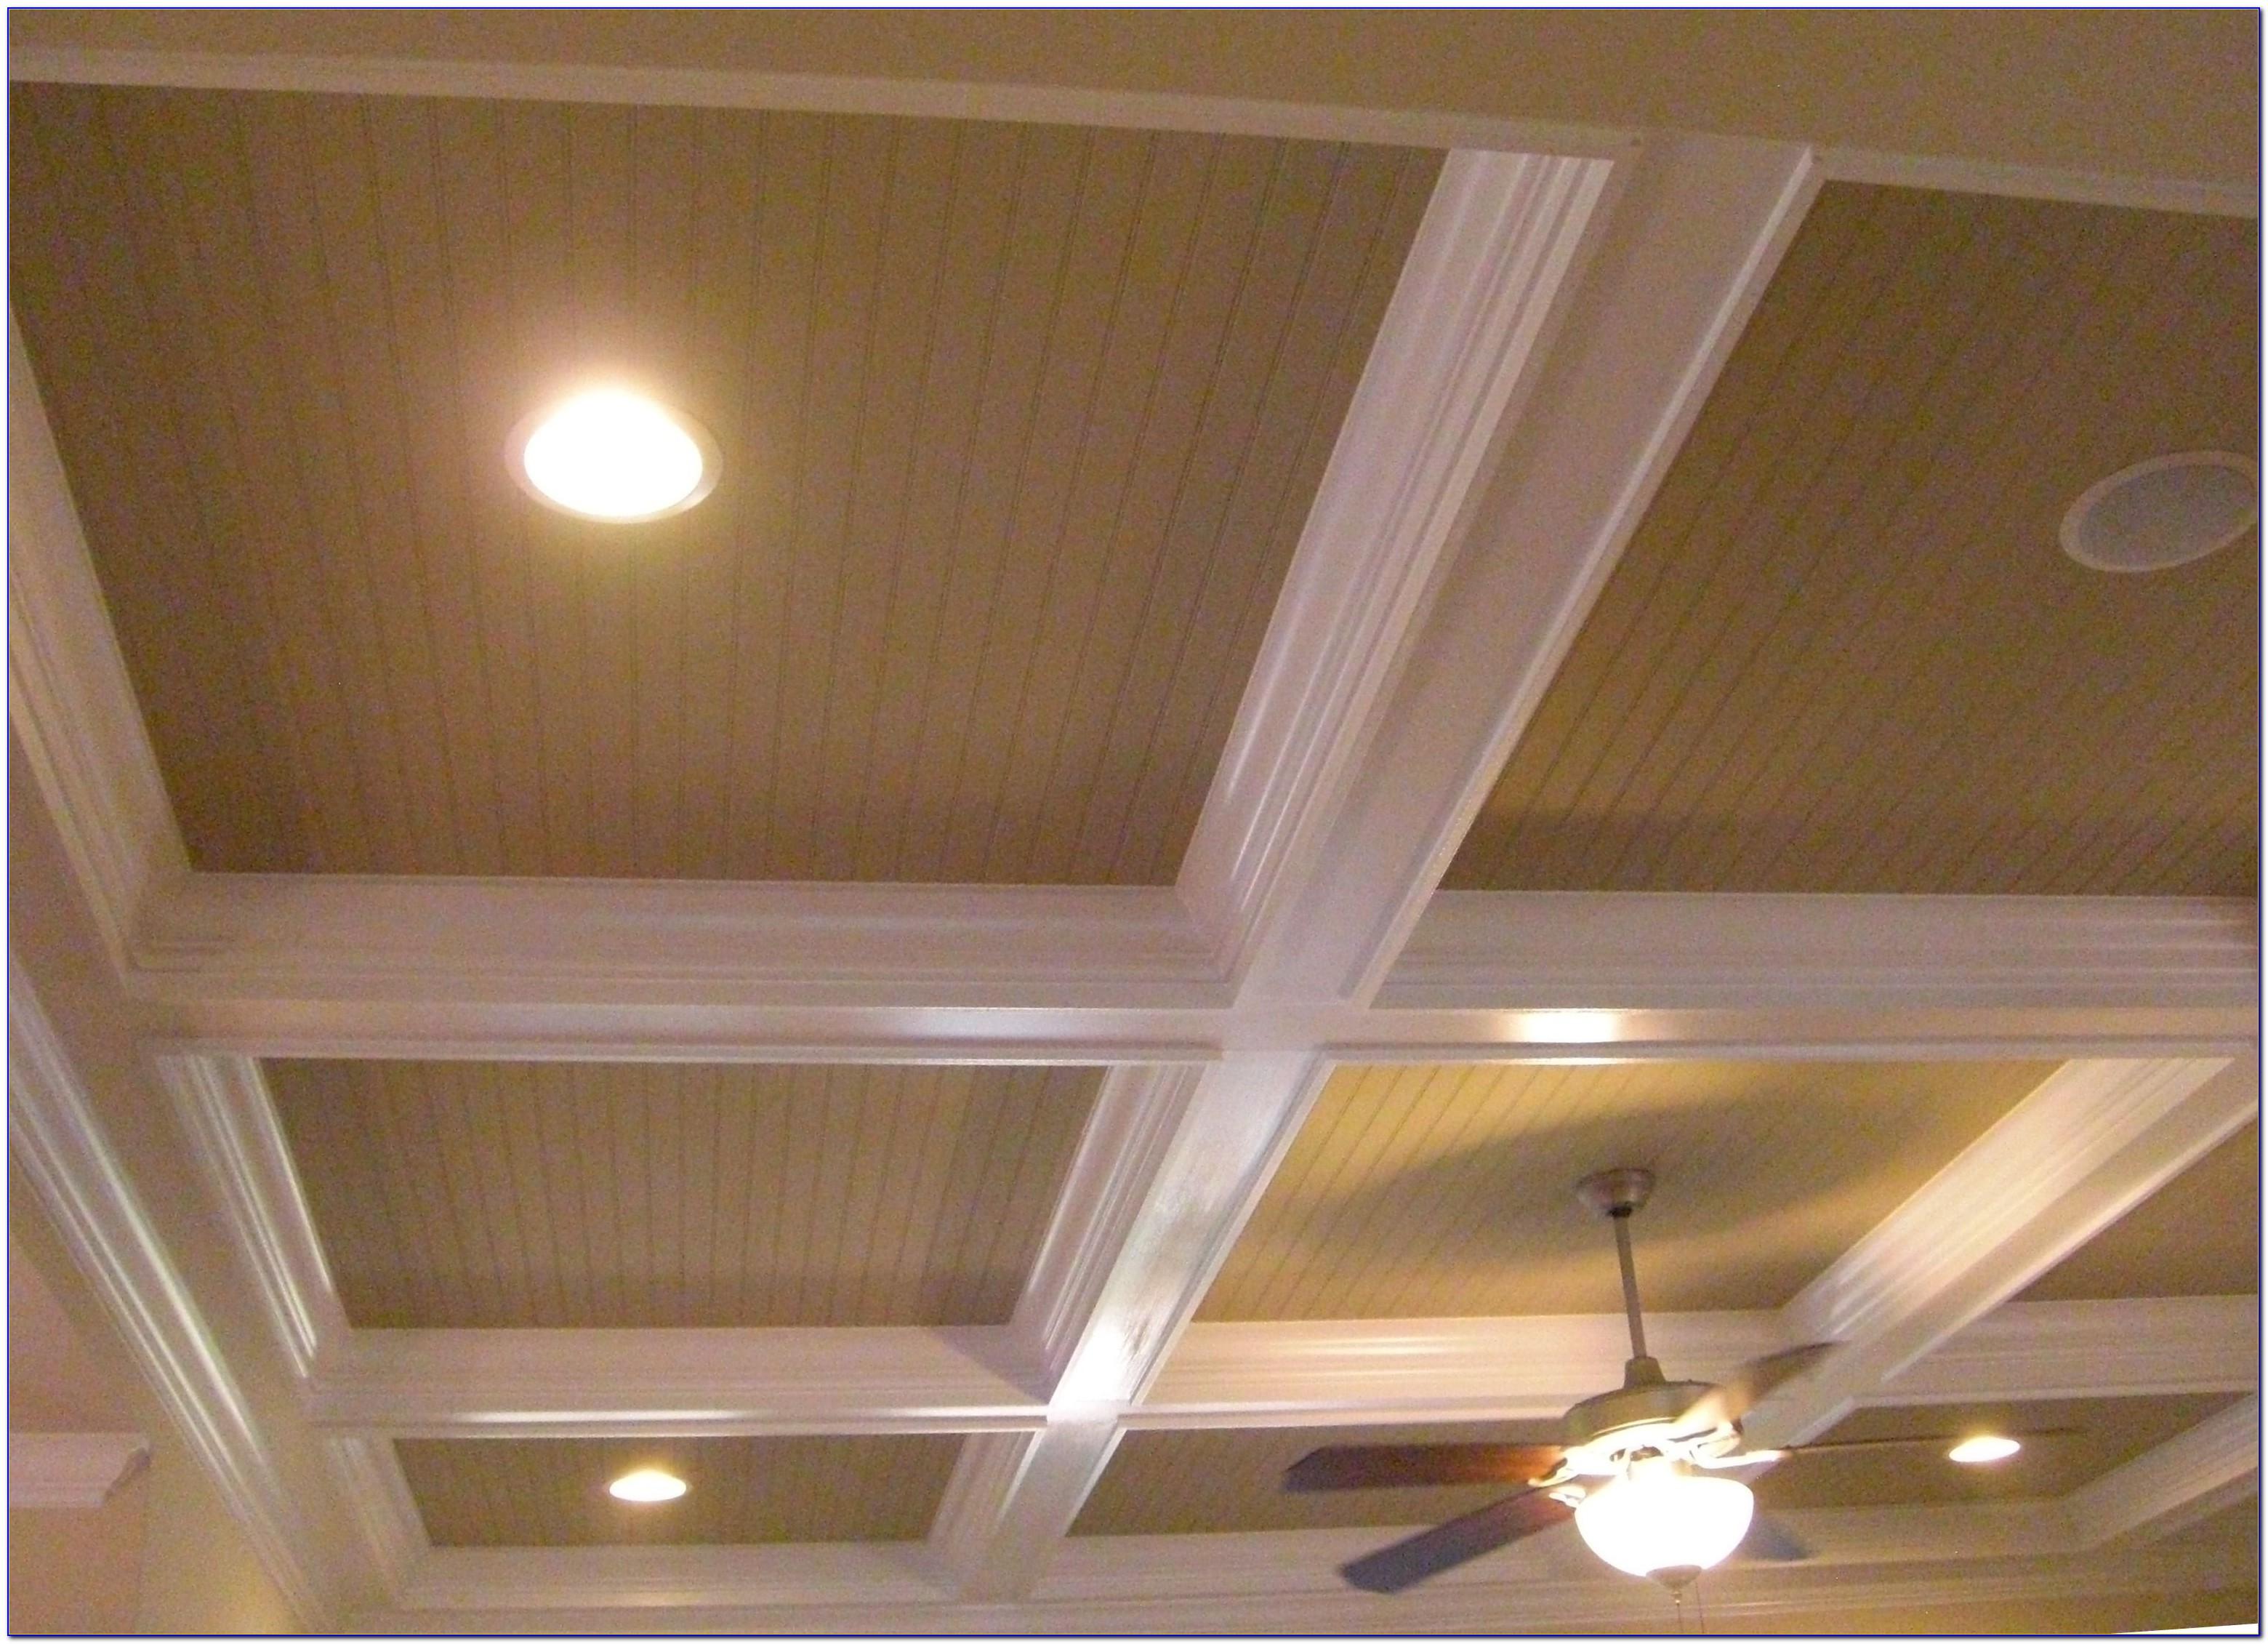 How To Remove Built In Ceiling Speakers